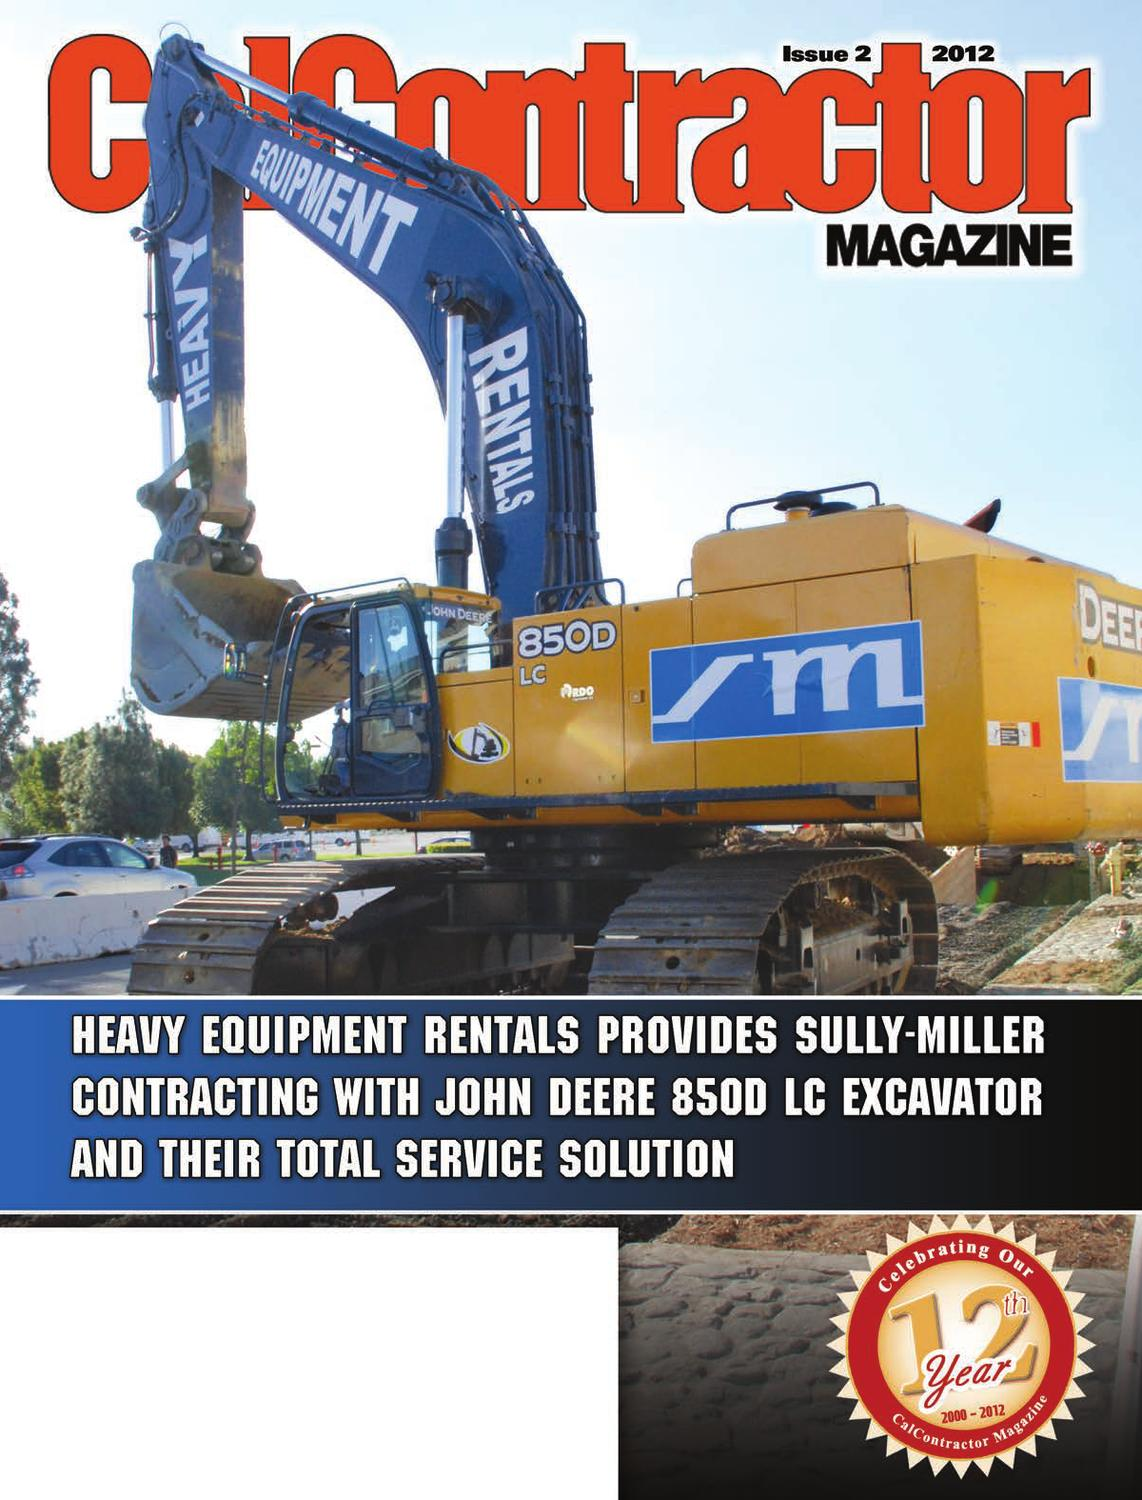 Calcontractor Rental Guide 2012 By Cms Issuu